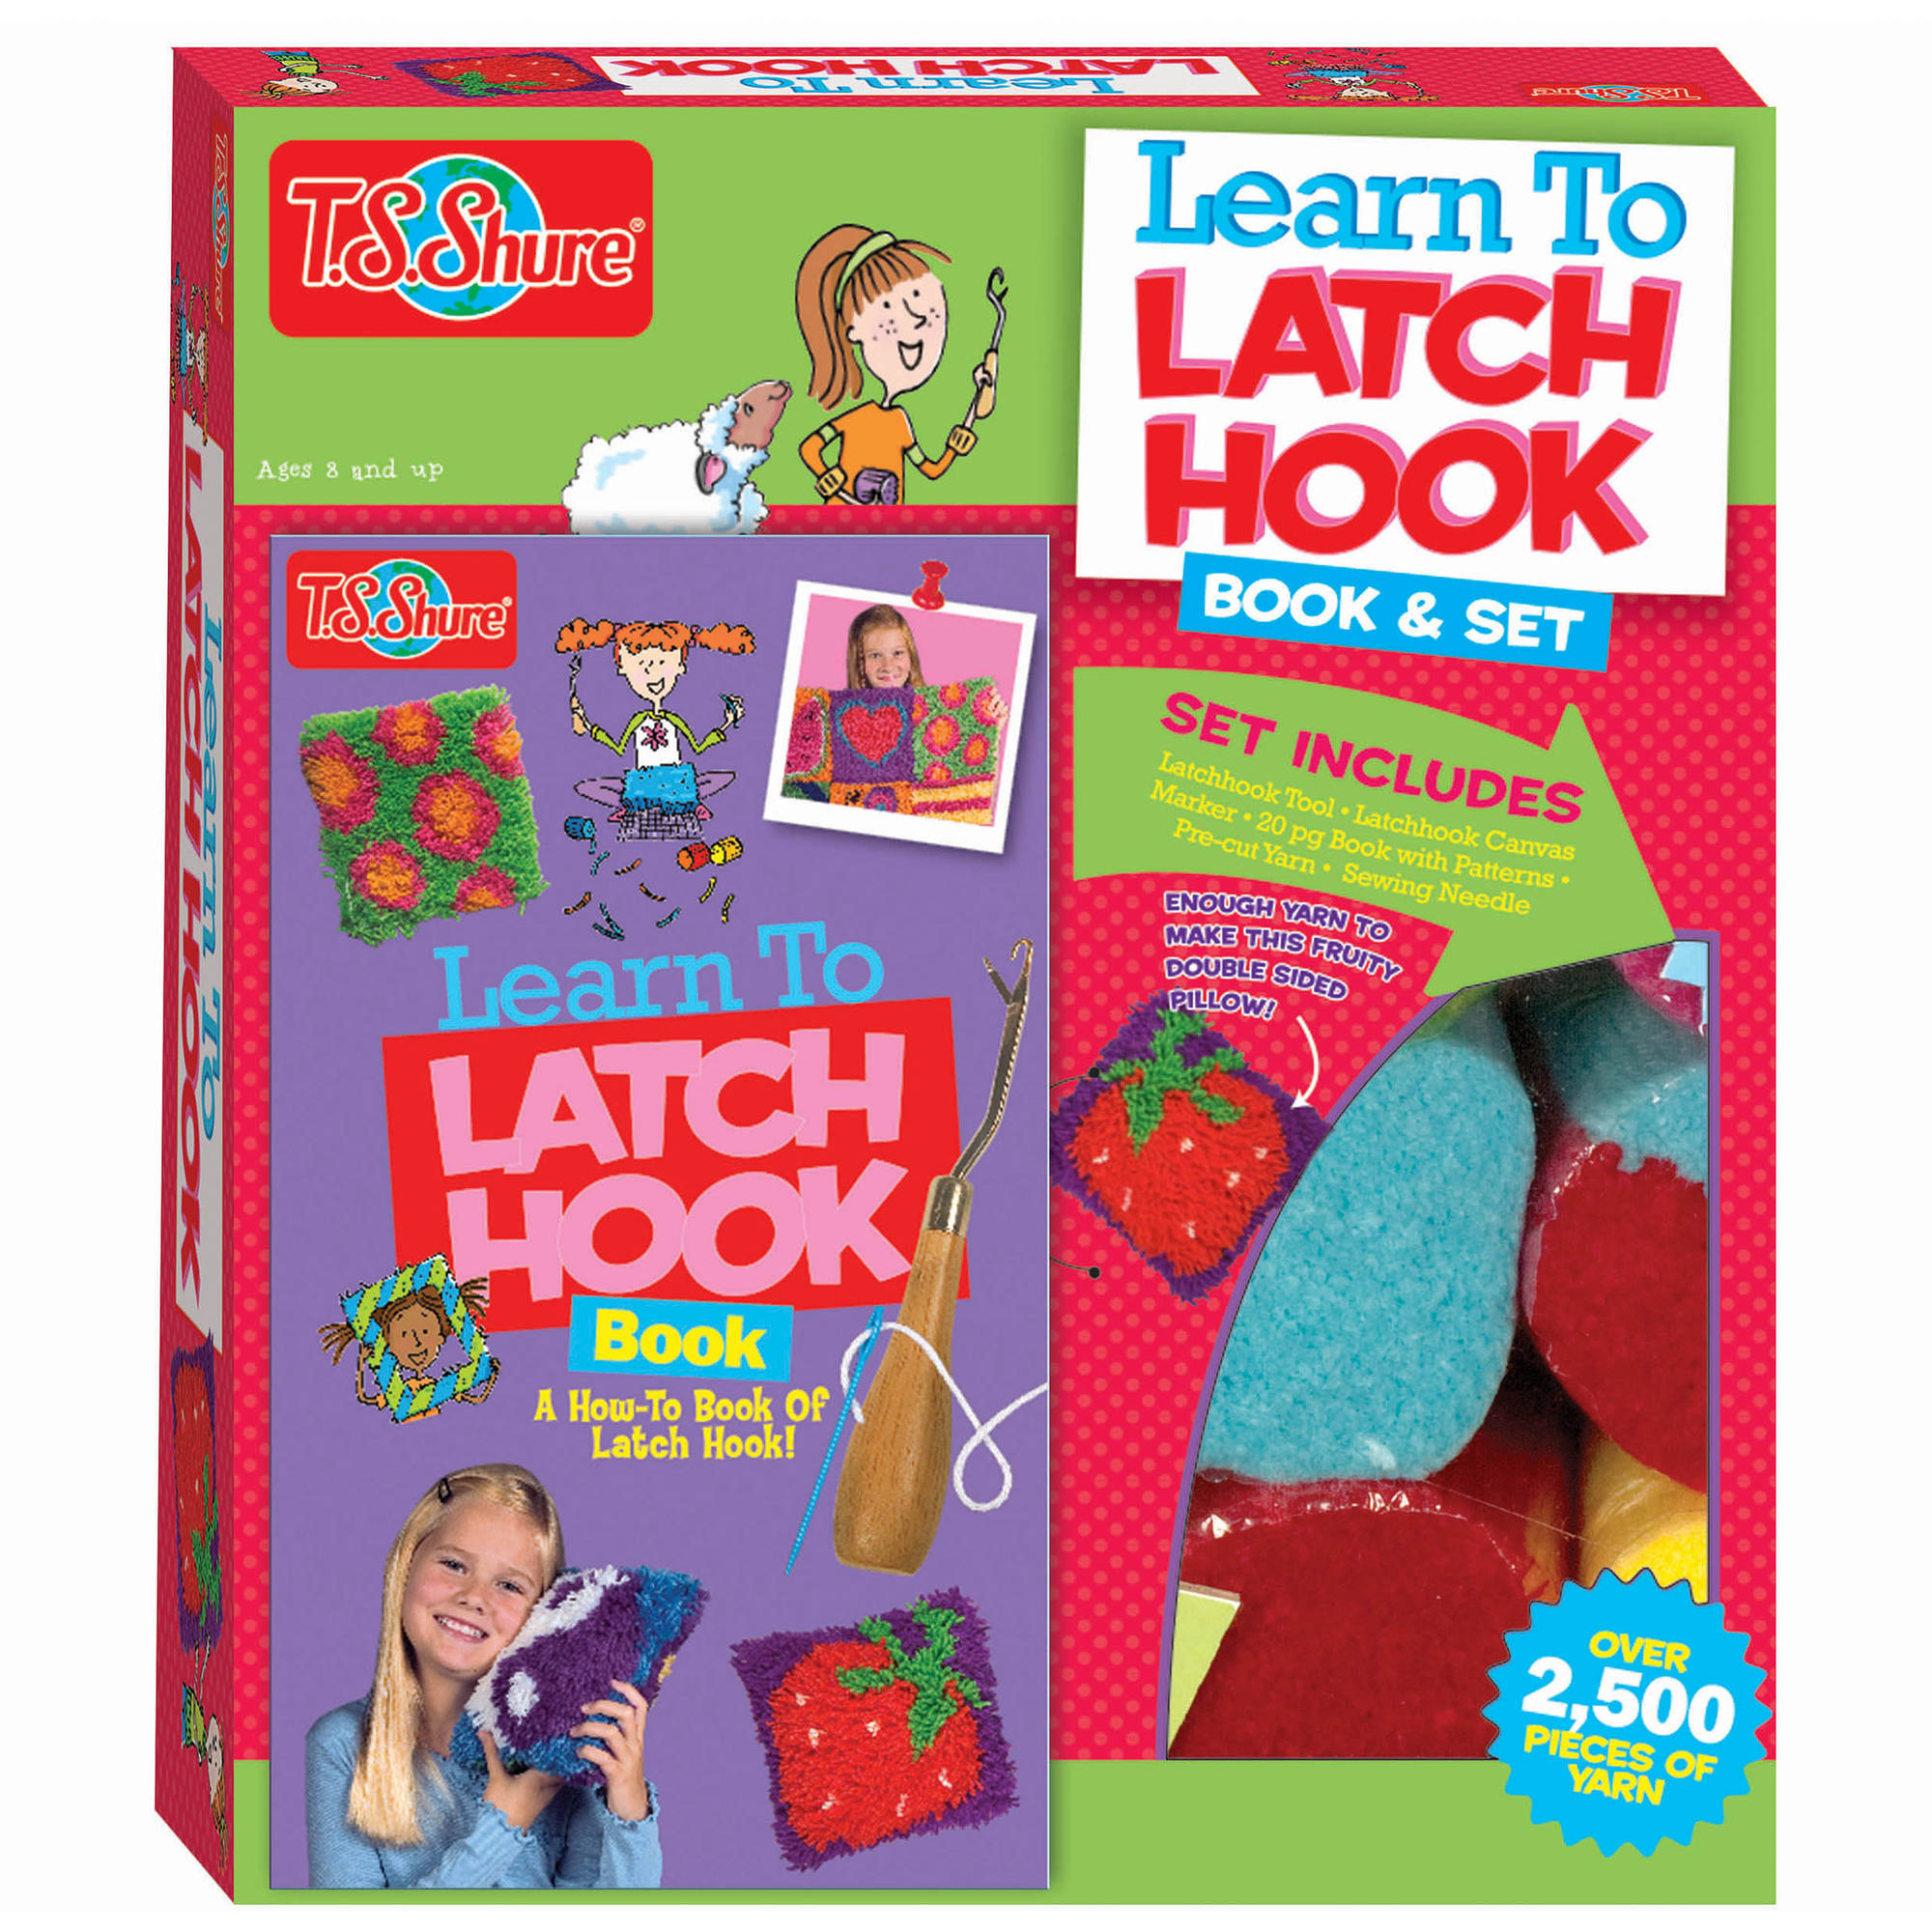 T.S. Shure Learn To Latchhook Activity Set and Book